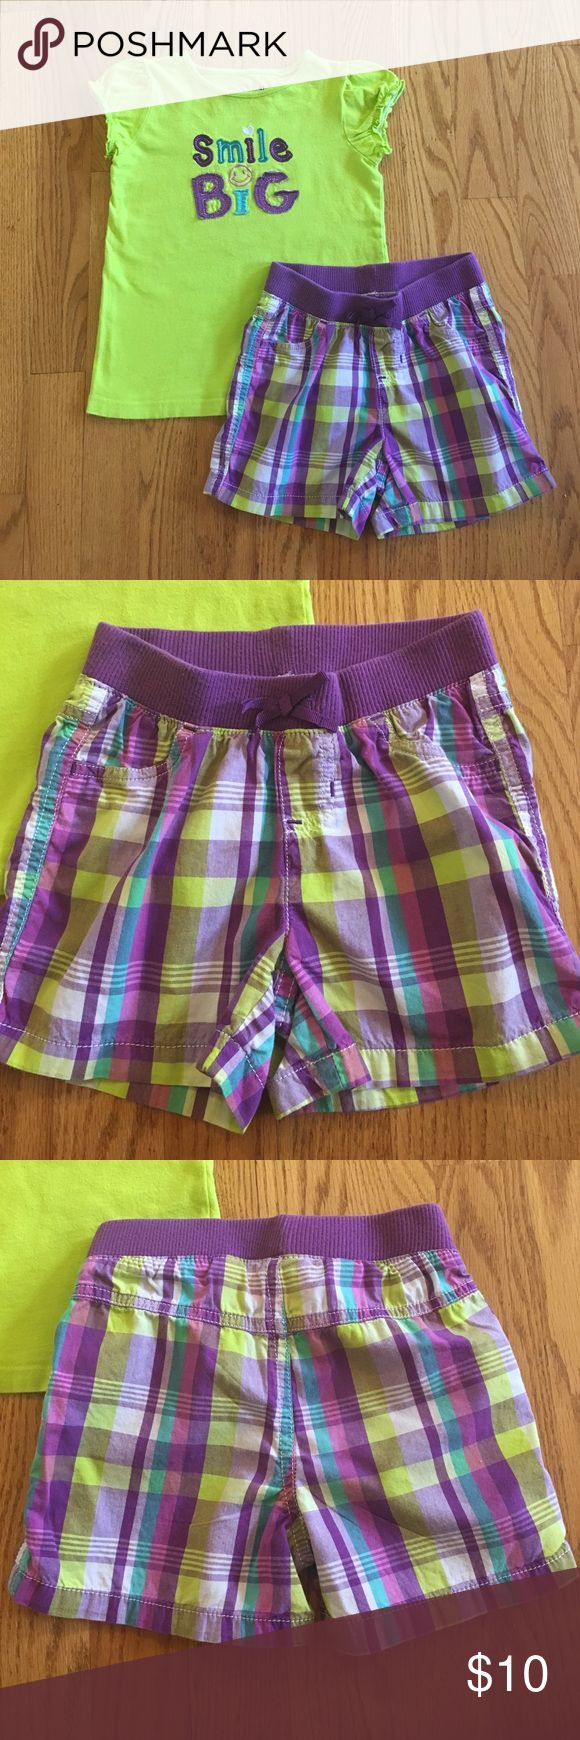 Girl's 4T Jumping Beans matching set This Girl's 4T Jumping Beans matching set includes purple and green plaid shorts and lime green t-shirt with the words Smile Big appliquéd on the front. T-shirt has slight pilling. Comes from a smoke free and pet free home. Jumping Beans Matching Sets